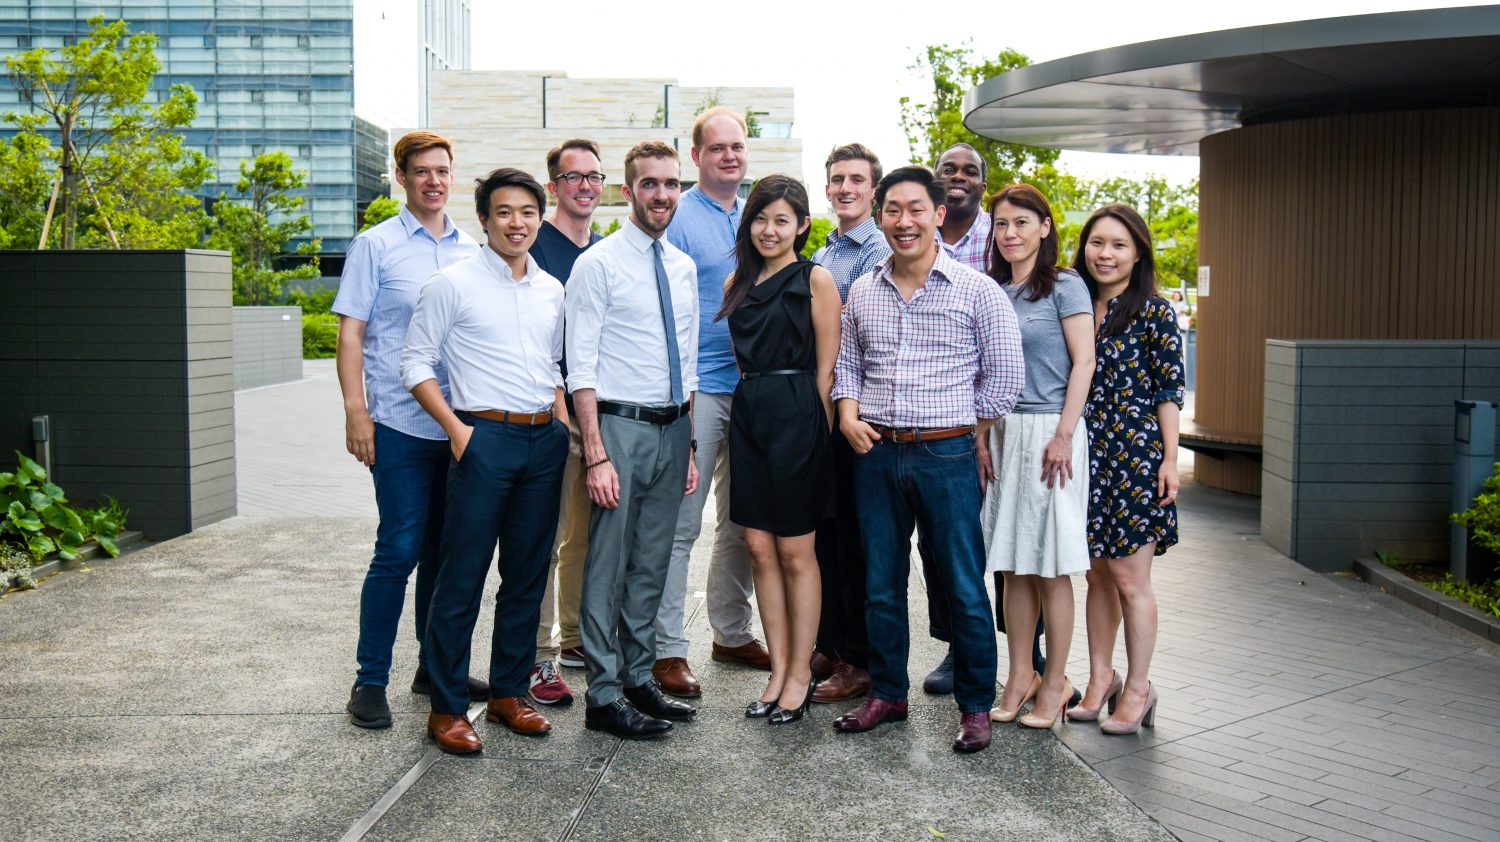 The new Rakuten Rapid API team. From left to right: Marc Gatley, Rintaro Kido, Marcus Saw, Alex Walling, Andrey Bukati, Lin Chen, Iddo Ding, Jed Ng, Caven Mitchell, Kanae Tanabe, Donna Yu